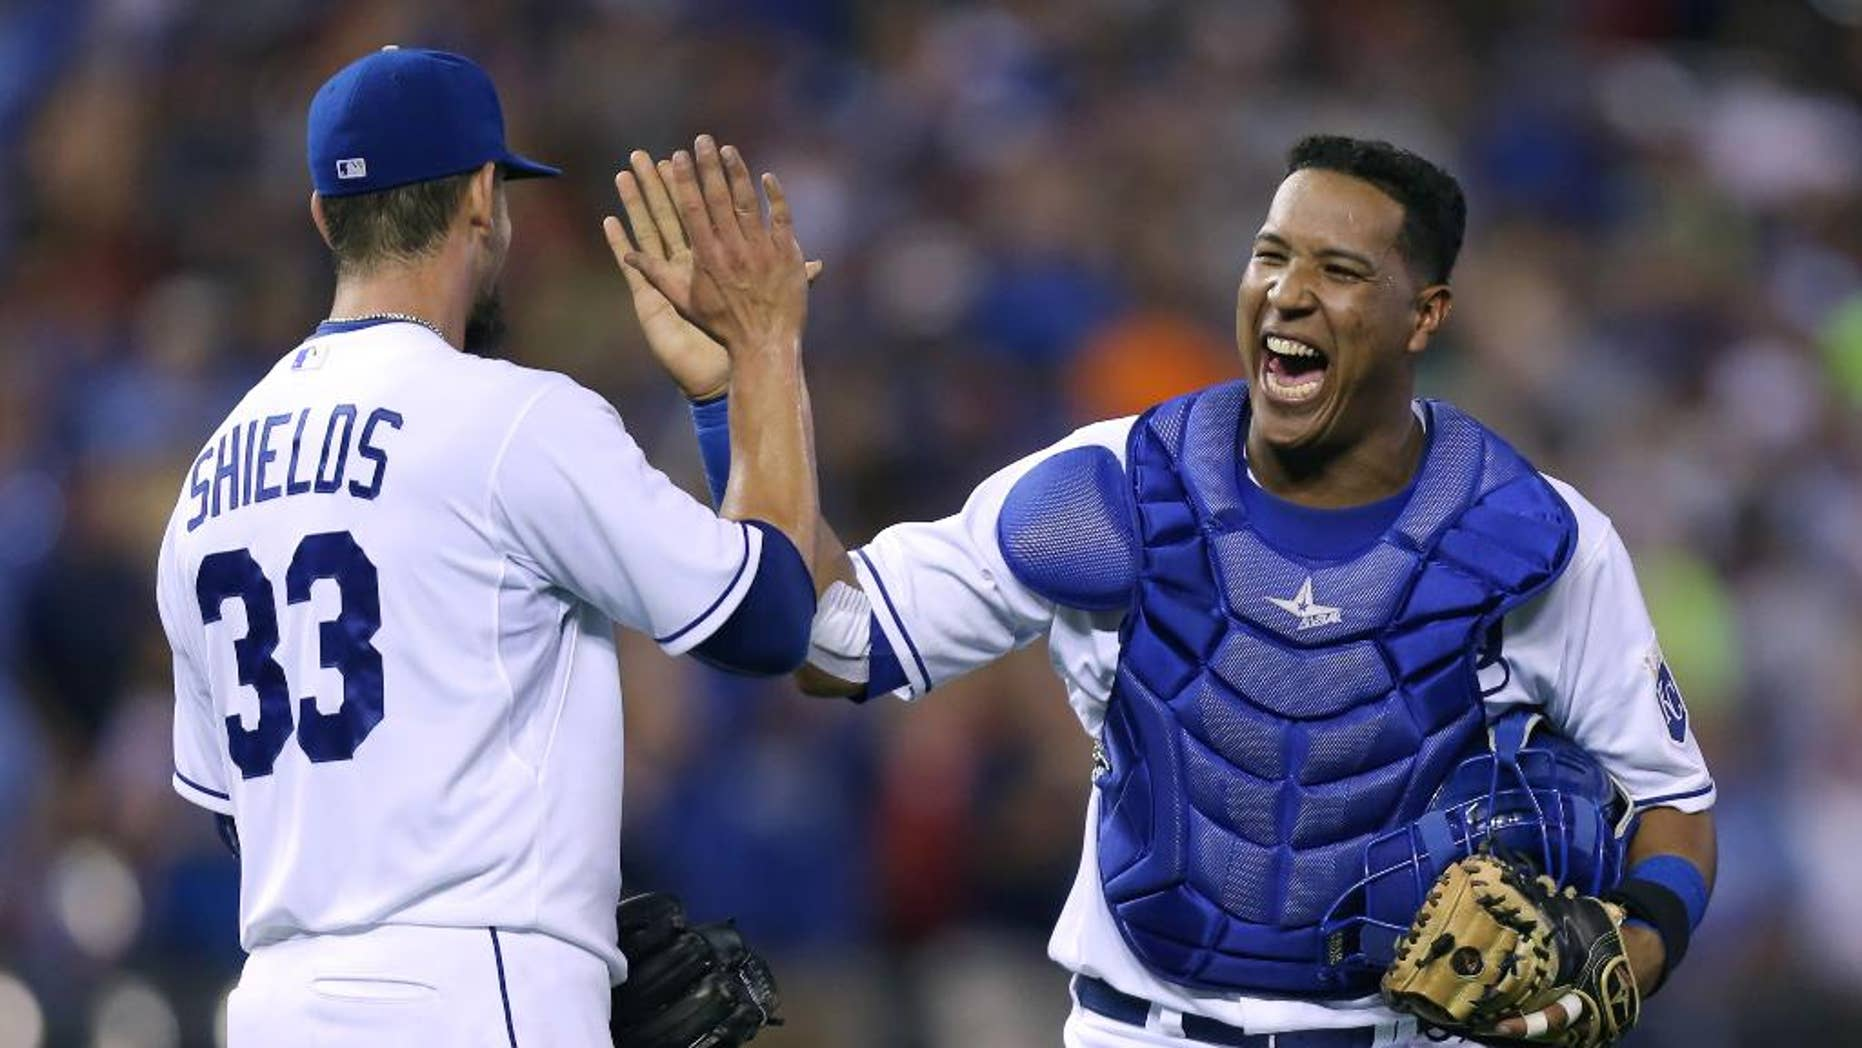 FILE - In this Aug. 9, 2014, file photo, Kansas City Royals  catcher Salvador Perez celebrates with starting pitcher James Shields (33) after Shields threw a complete game shutout against the San Francisco Giants in Kansas City, Mo. After making the most starts behind the plate of any big league catcher in a century, Salvador Perez wants more. The Kansas City Royals star was among 29 players on the roster announced Friday, Nov. 7, 2014,  for the Major League Baseball all-star postseason tour of Japan.  (AP Photo/Ed Zurga, File)